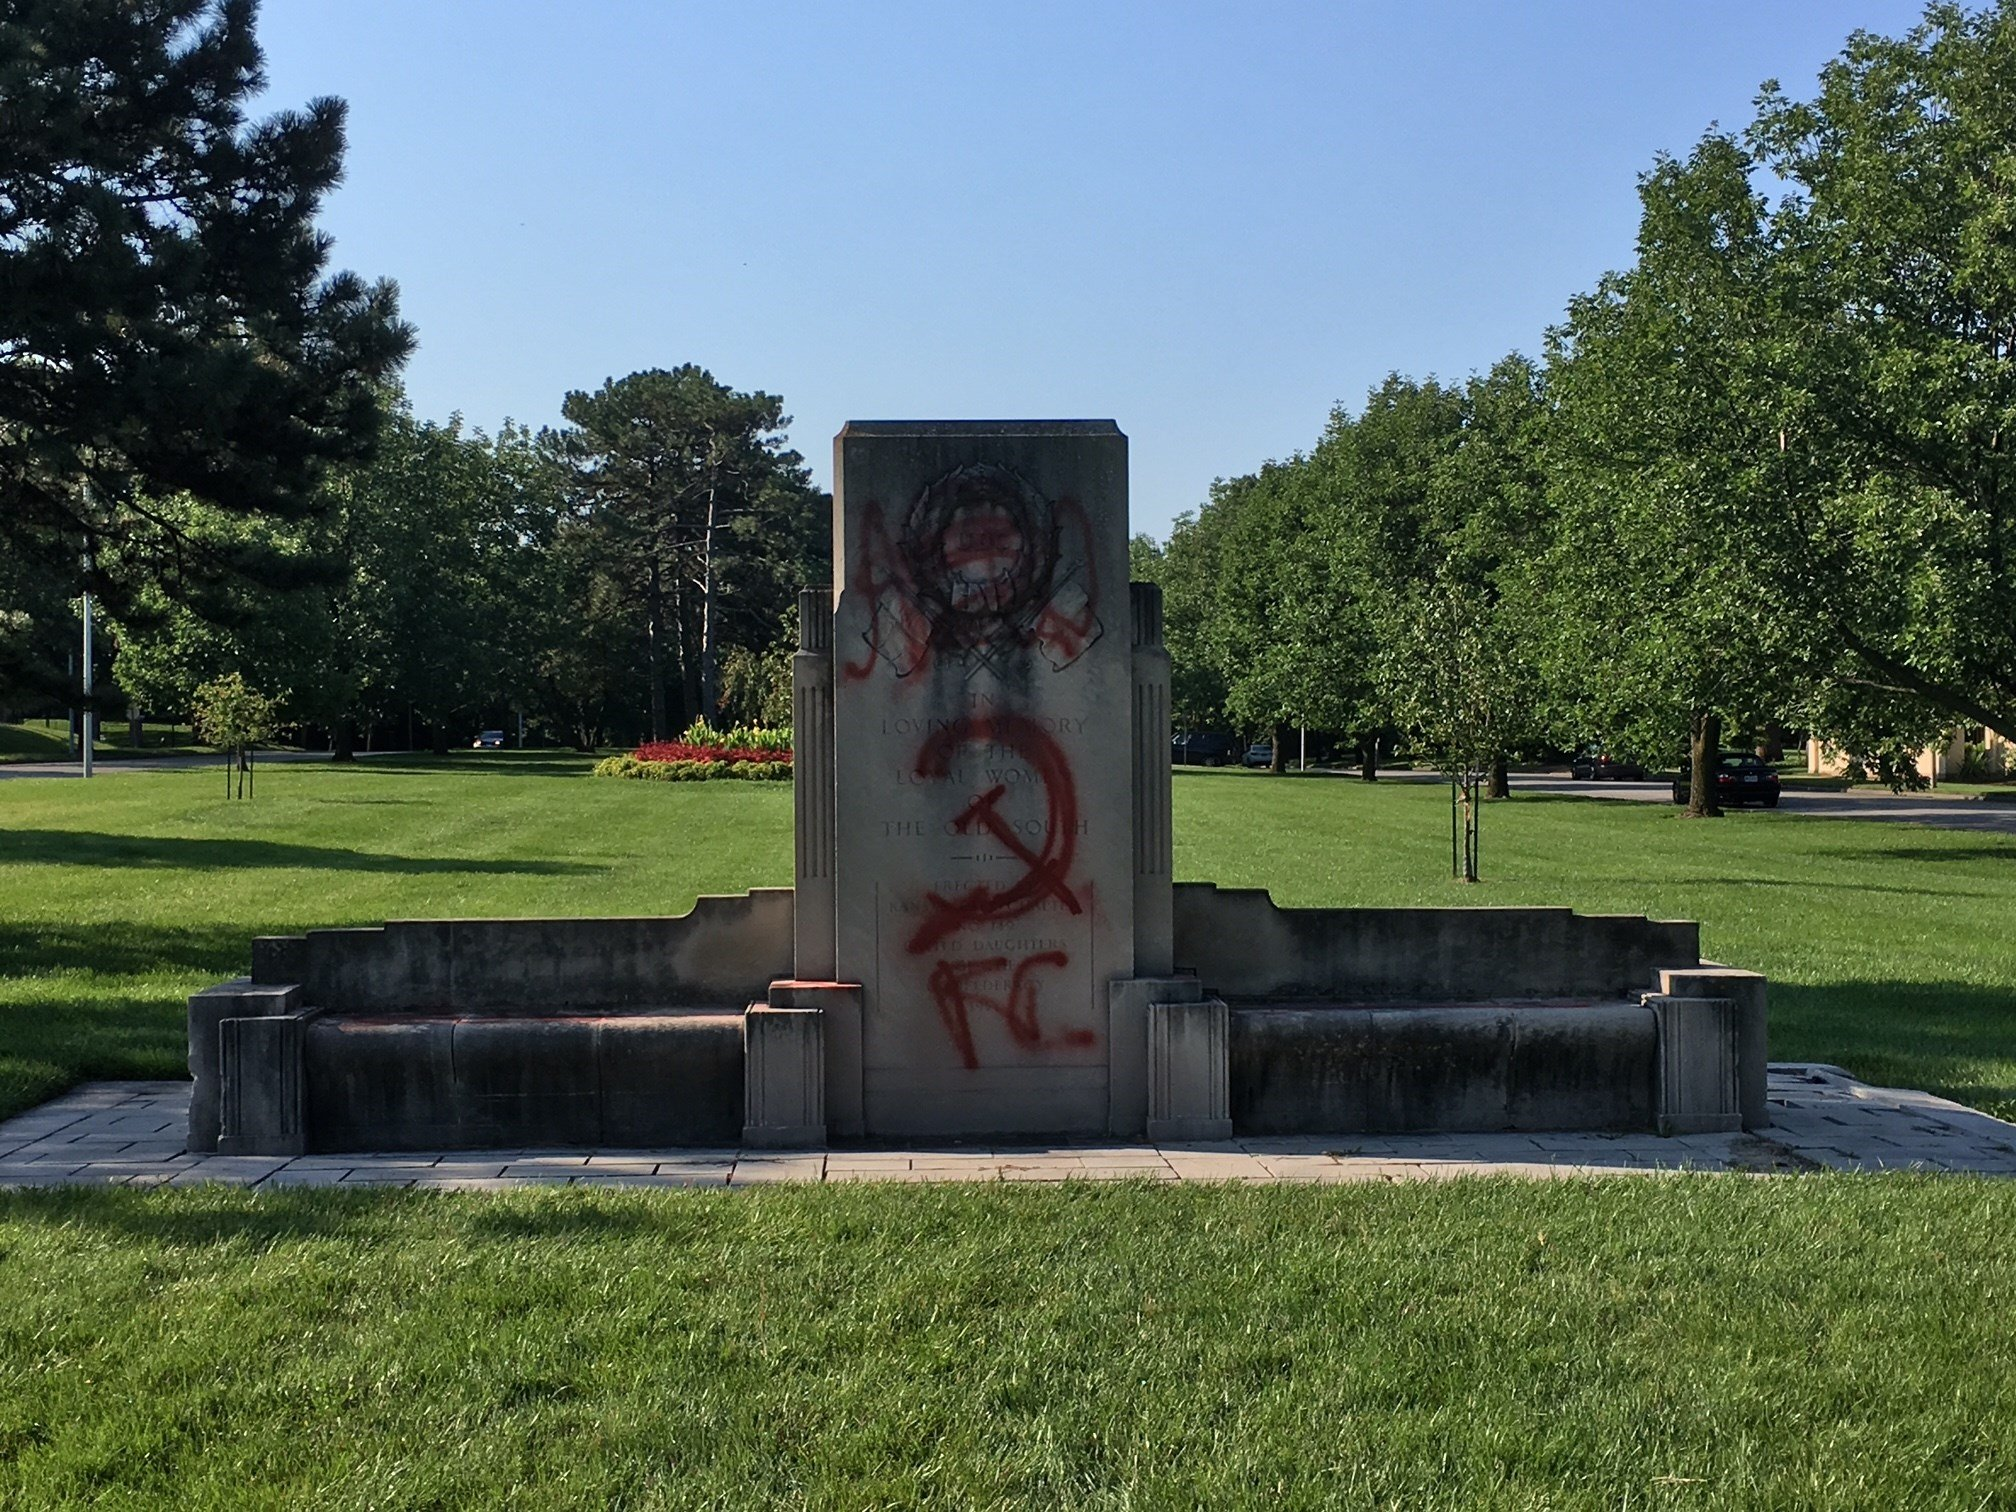 Confederate monument in Kansas City sprayed with graffiti